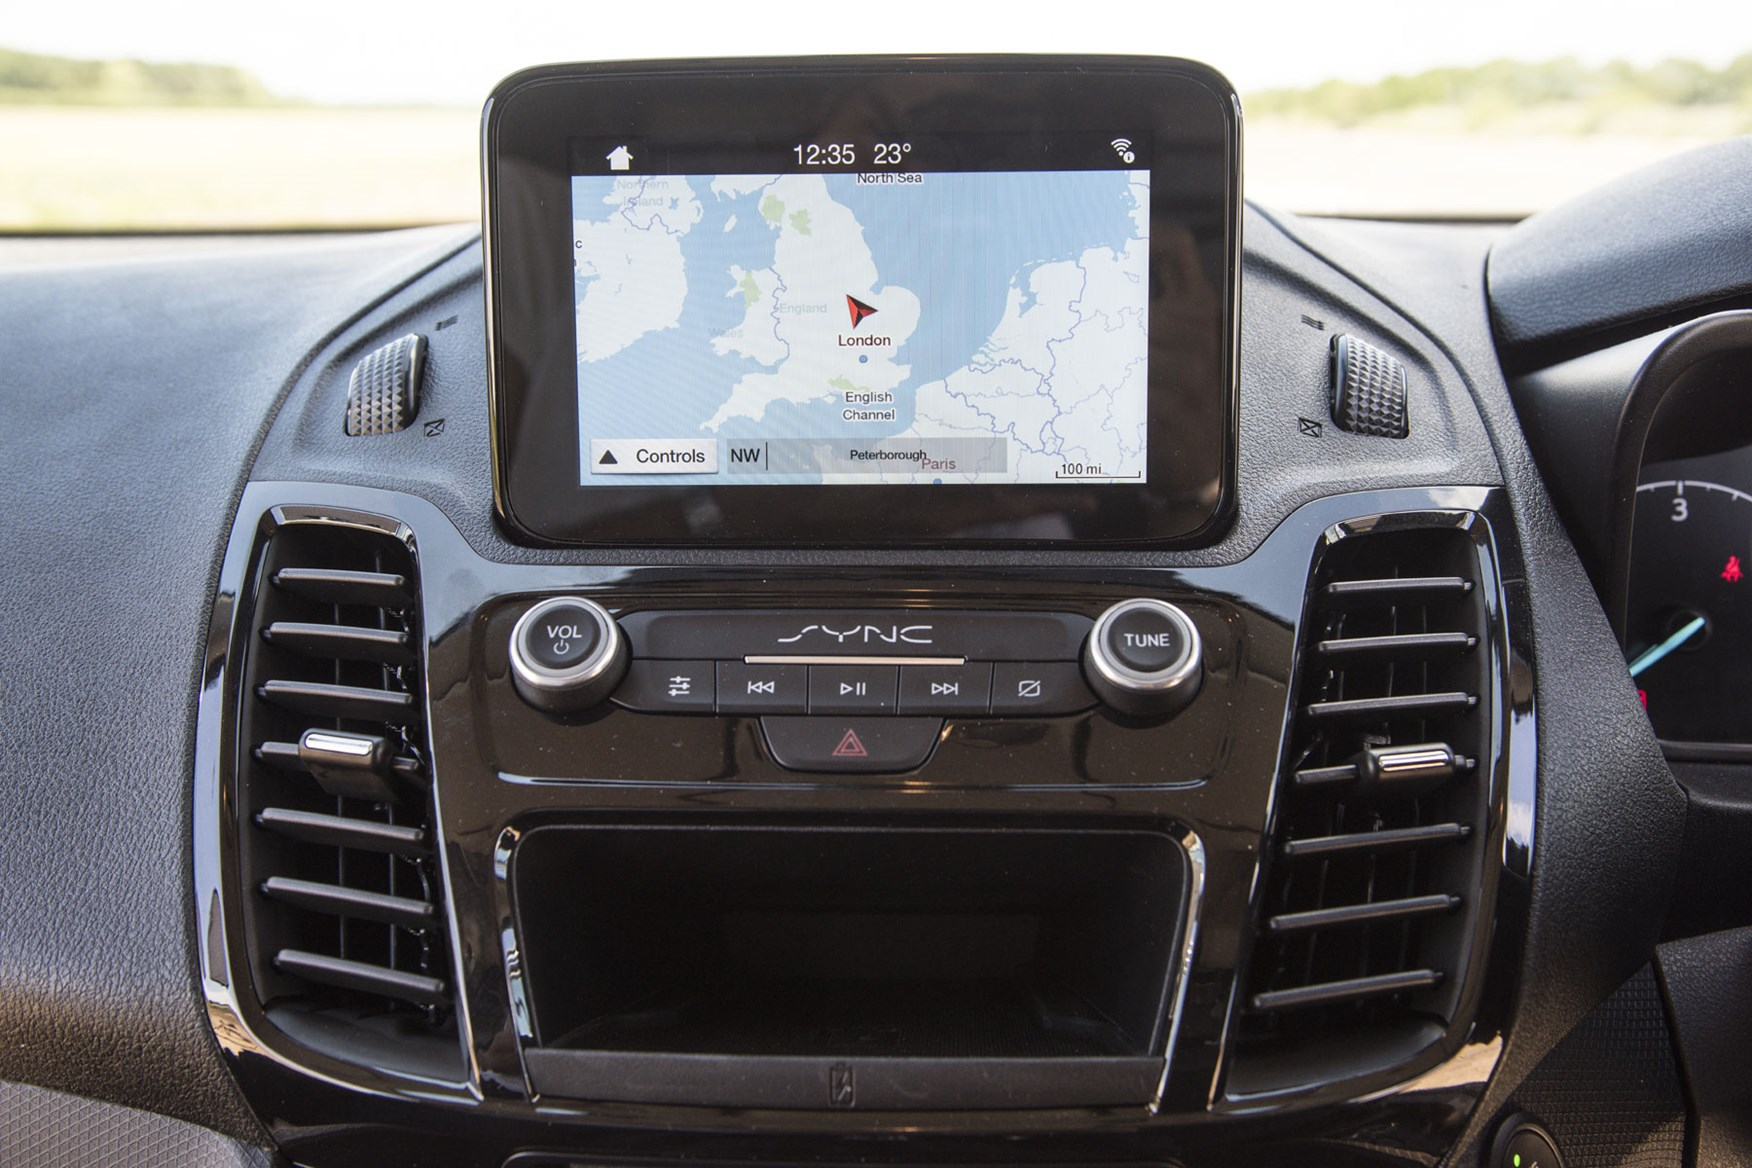 Ford Transit Connect review - 2018 Sync 3 infotainment screen